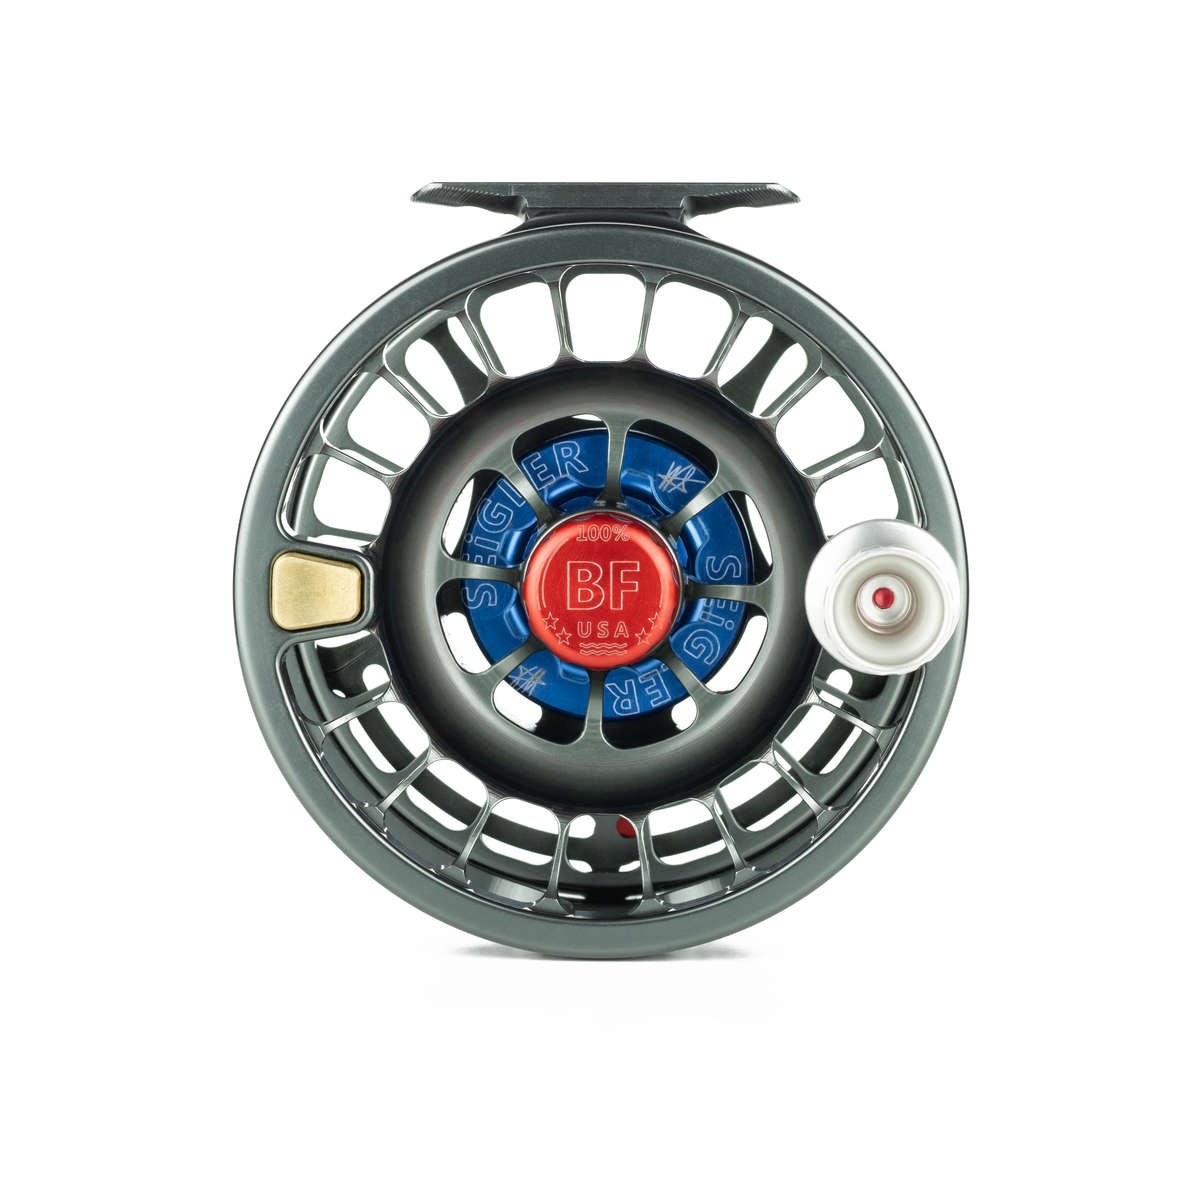 Front view of the Seigler Big Fly saltwater fly reel.